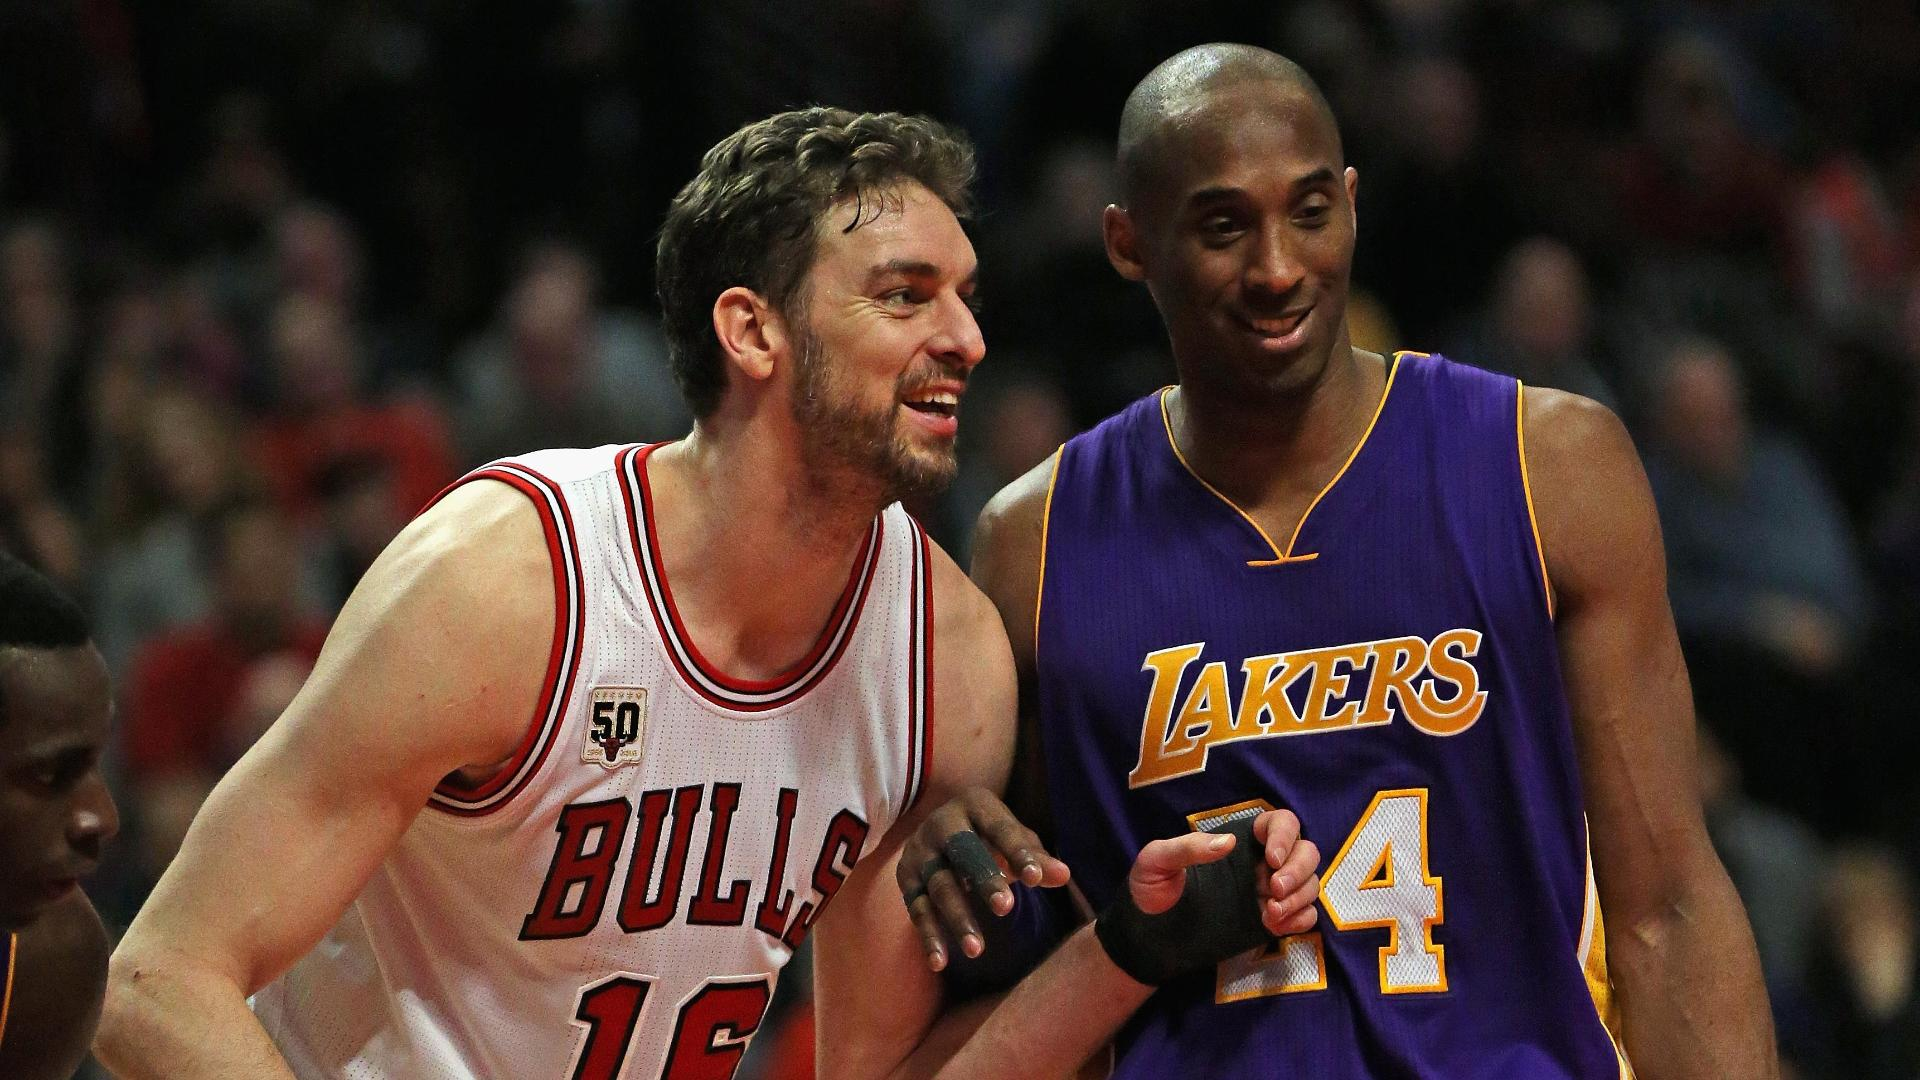 Kobe scores 22 in loss to Bulls